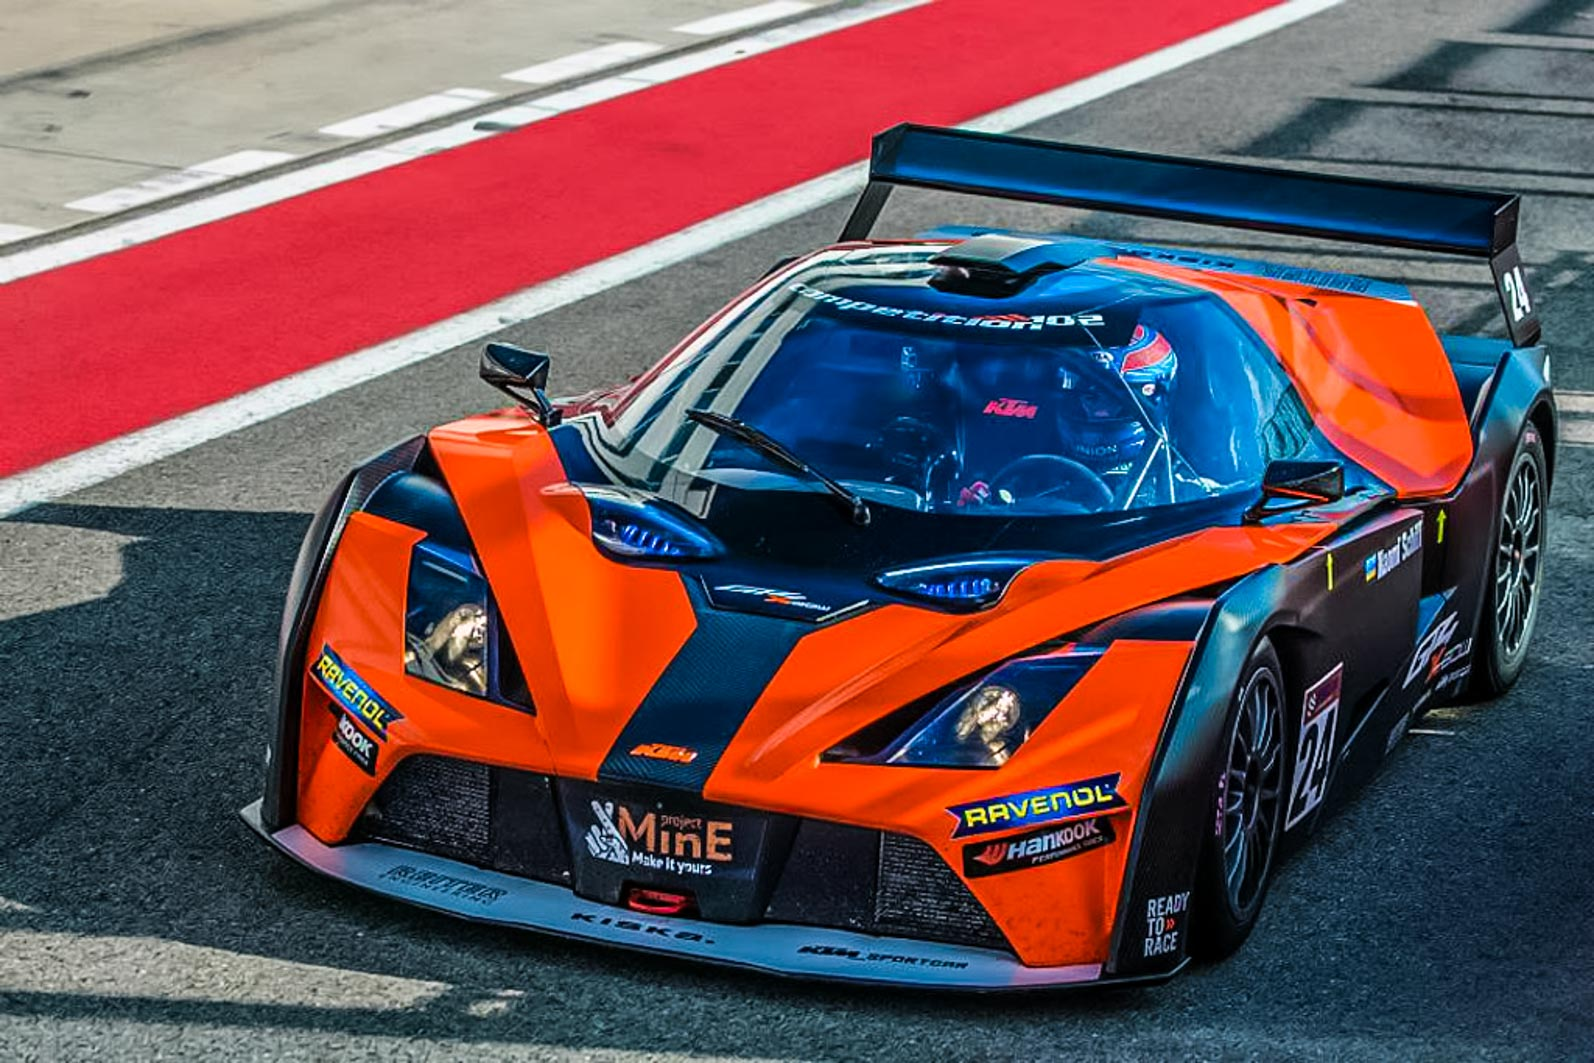 ANSA LOOKING TO RACE THE NEW KTM X-BOW GT4